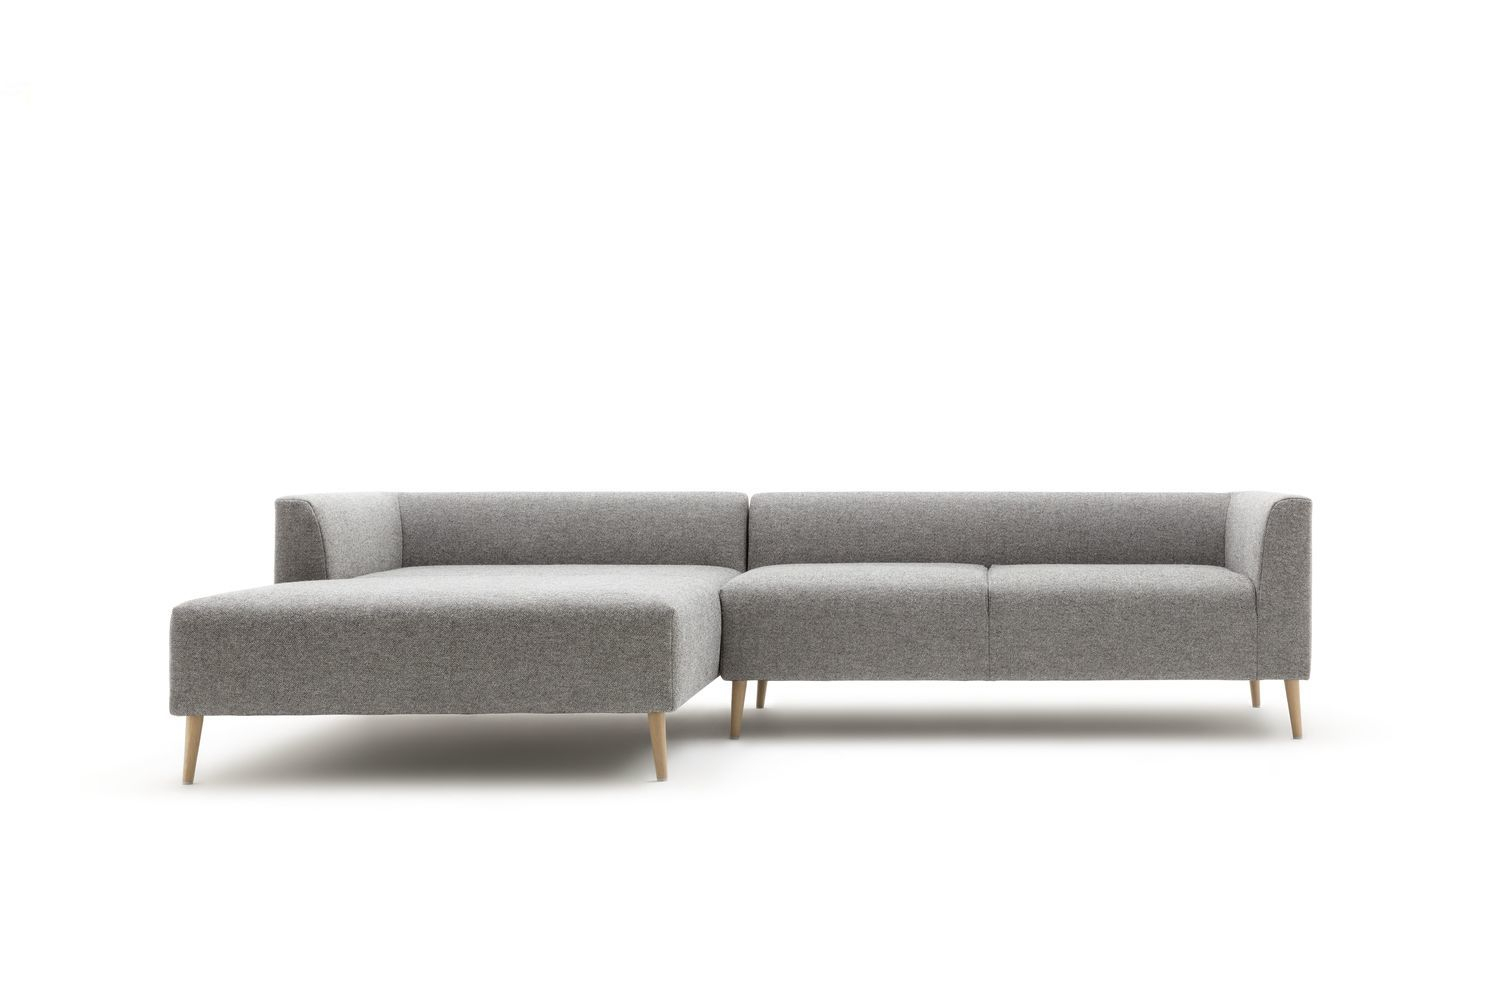 Freistil Rolf Benz Freistil 162 Ecksofa Shop I Design Bestseller De